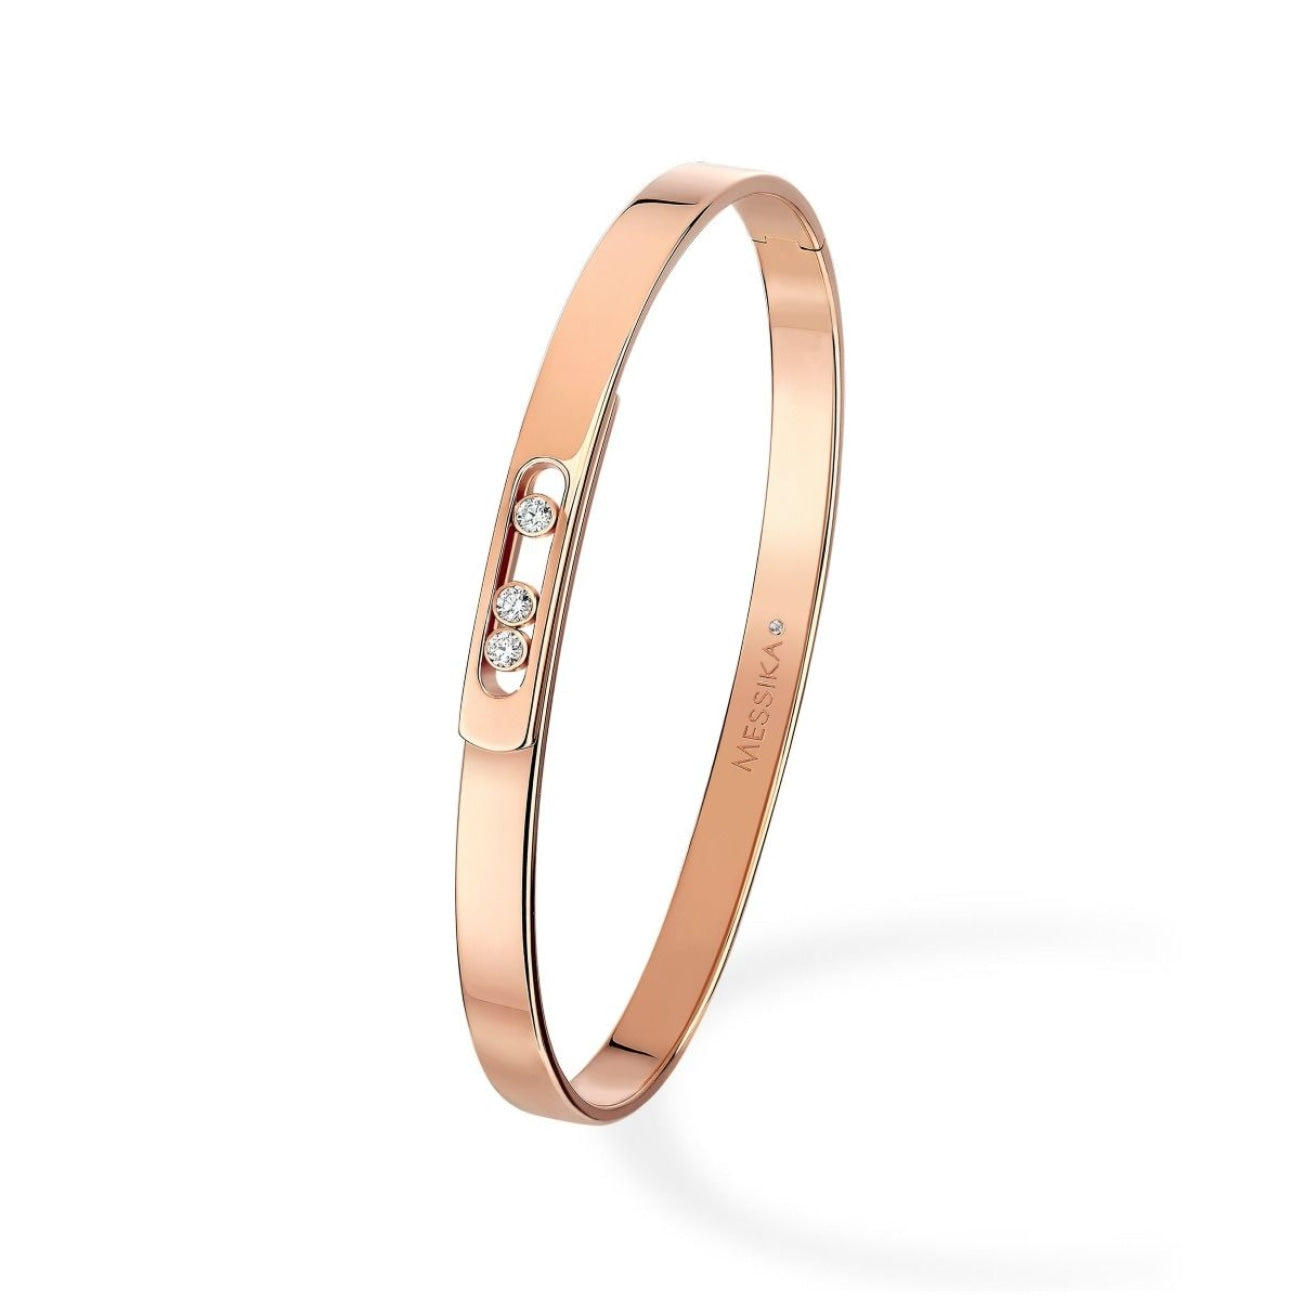 Messika Jewelry - Move Noa Bangle PM BRACELET - ROSE GOLD | Manfredi Jewels